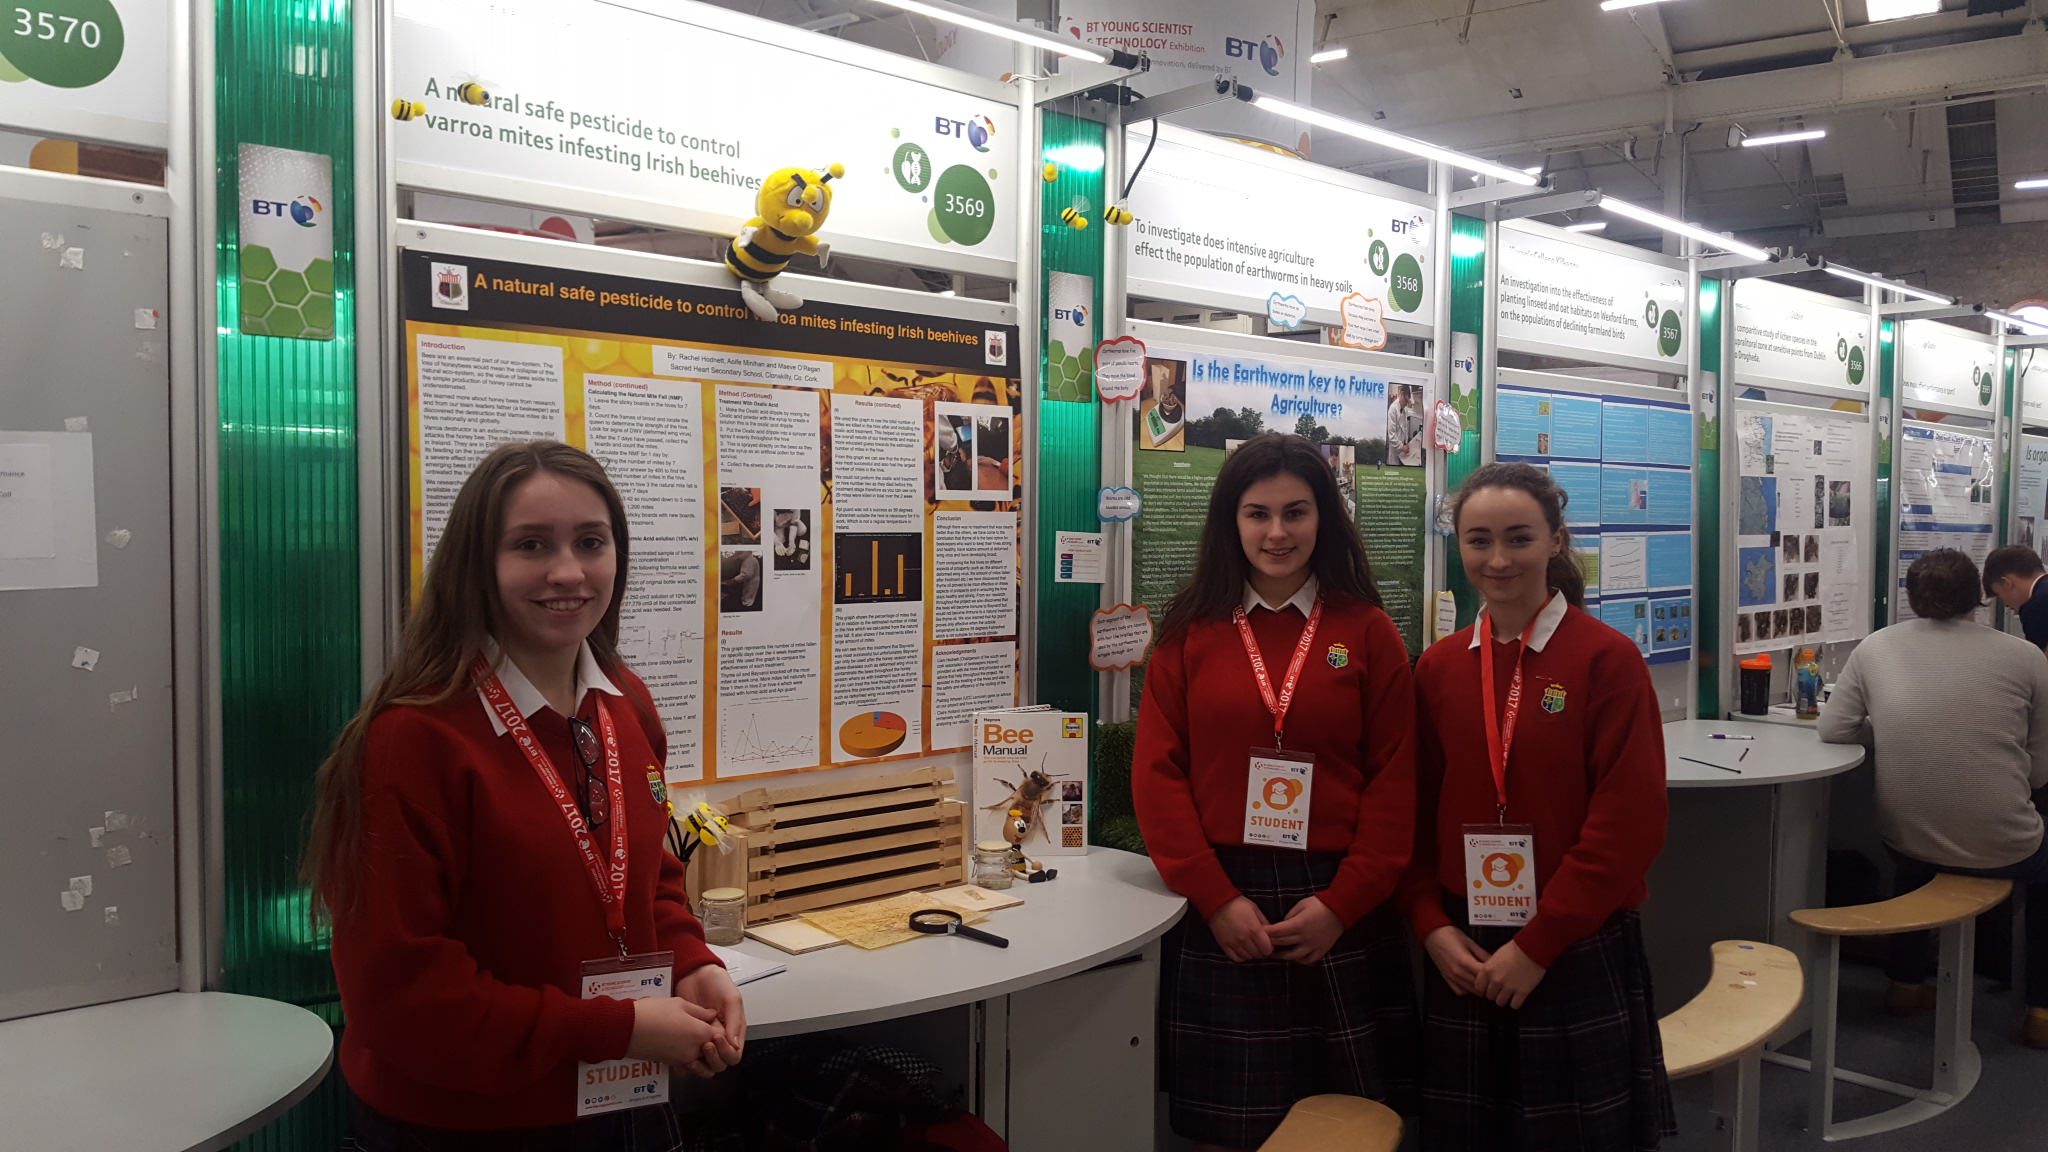 Group 1. Rachel Hodnett, Maeve O'Regan and Aoife Minihan Their project is an investigation into a natural safe pesticide to control the varroa mite infesting Irish beehives.